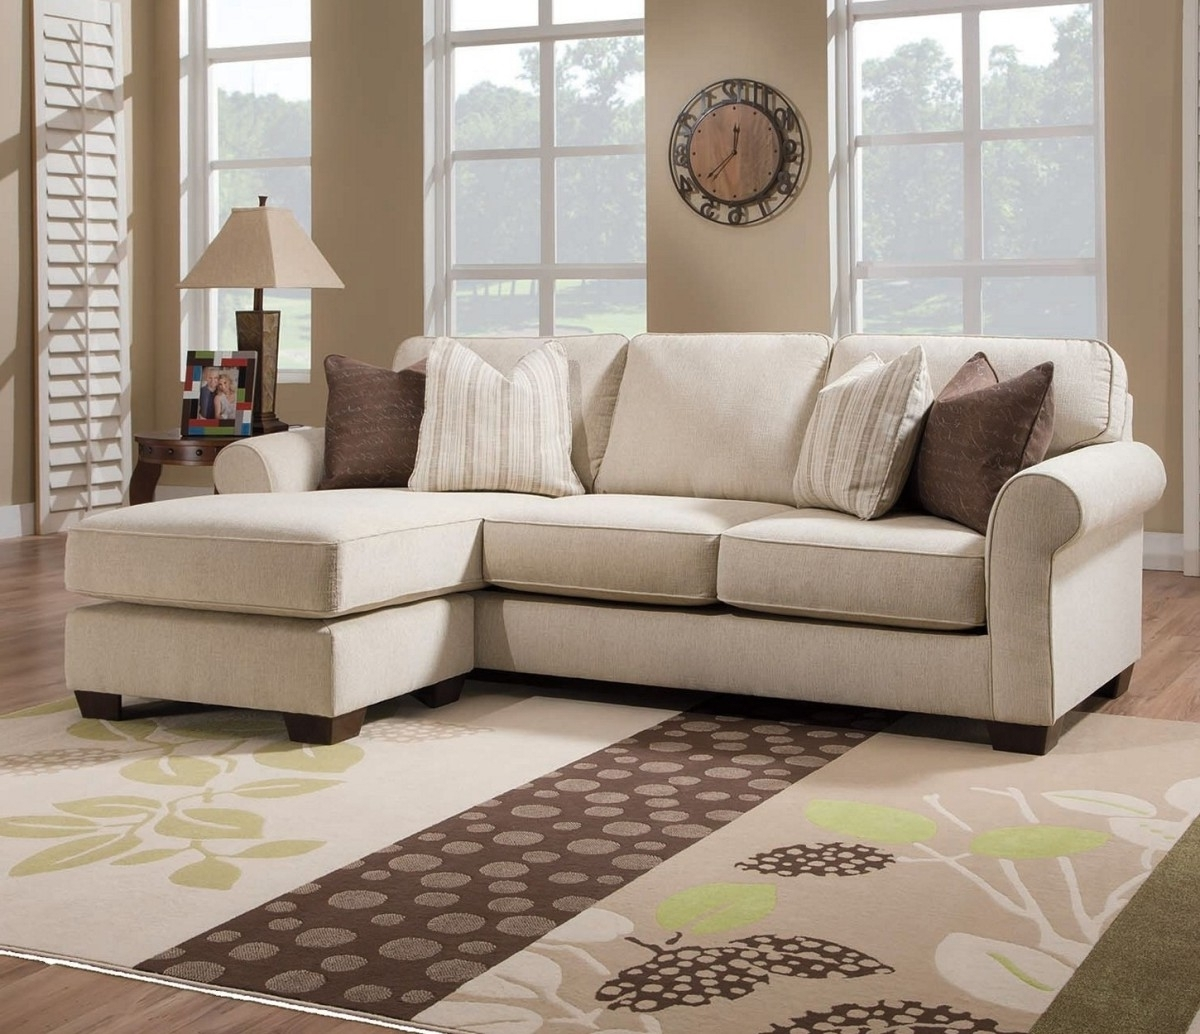 Most Recent Sams Club Sectional Sofas With Regard To Sofa : High Back Sofa Inexpensive Sectional Sofas For Small Spaces (View 2 of 20)